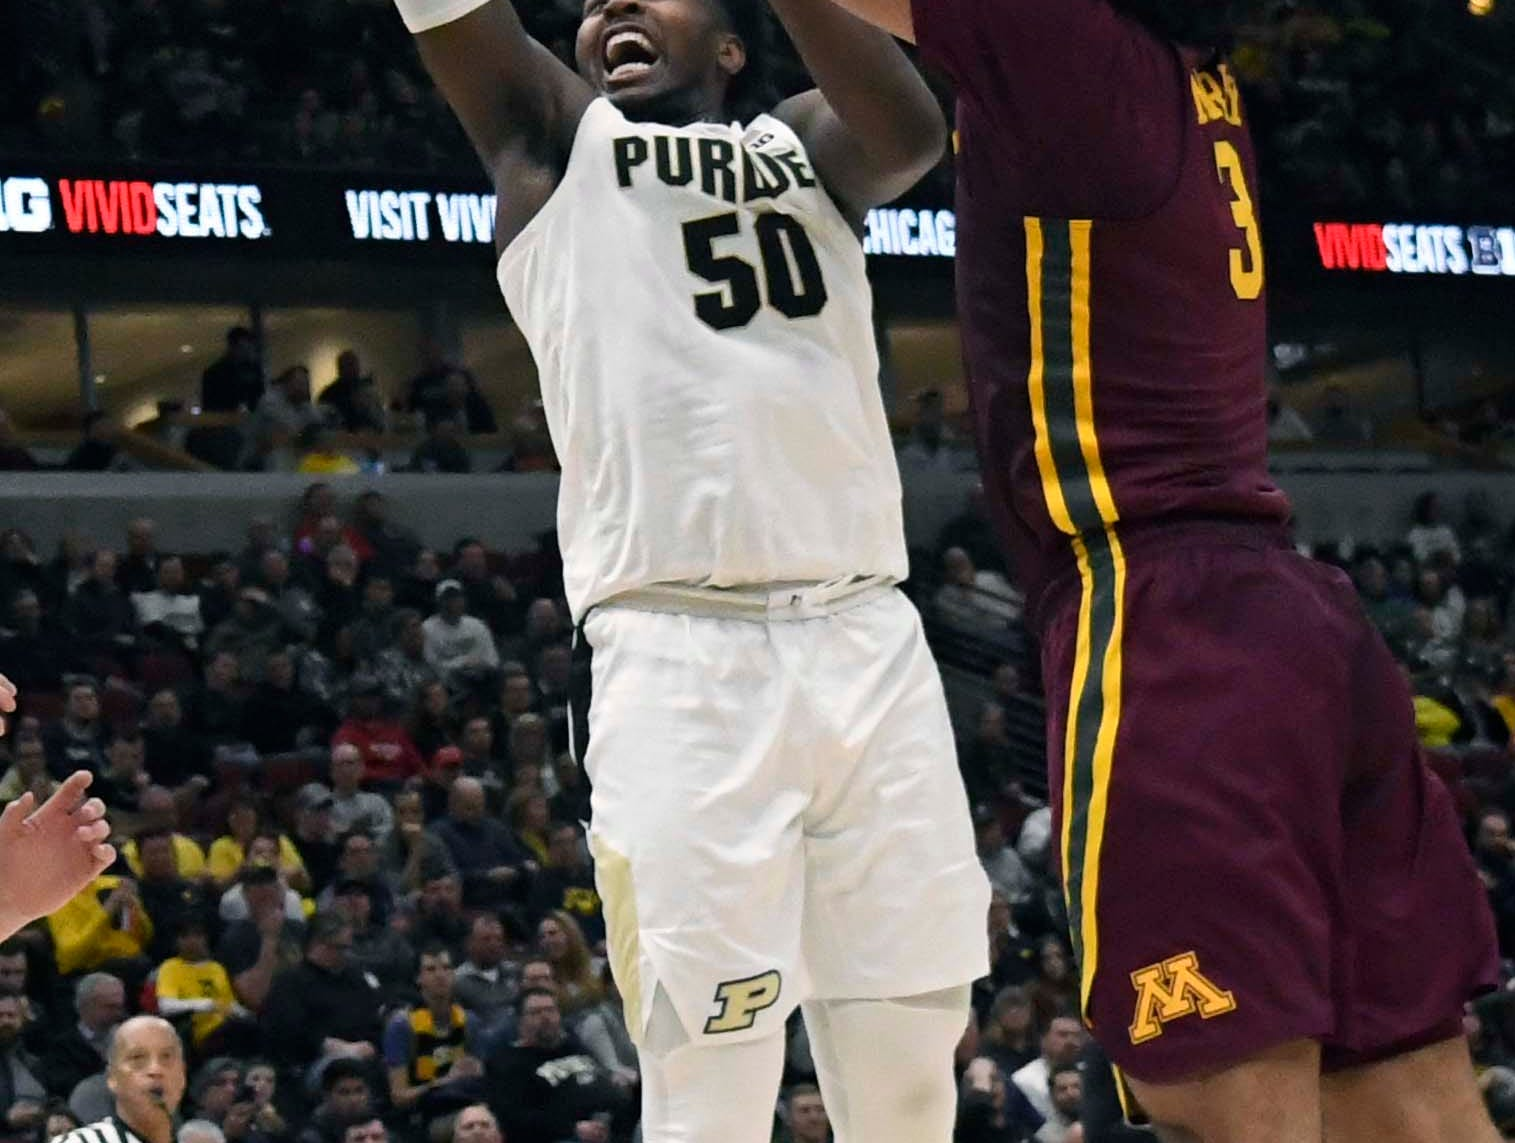 Mar 15, 2019; Chicago, IL, USA; Purdue Boilermakers forward Trevion Williams (50) shoots the ball as Minnesota Golden Gophers forward Jordan Murphy (3)defends him during the second half in the Big Ten conference tournament at United Center. Mandatory Credit: David Banks-USA TODAY Sports